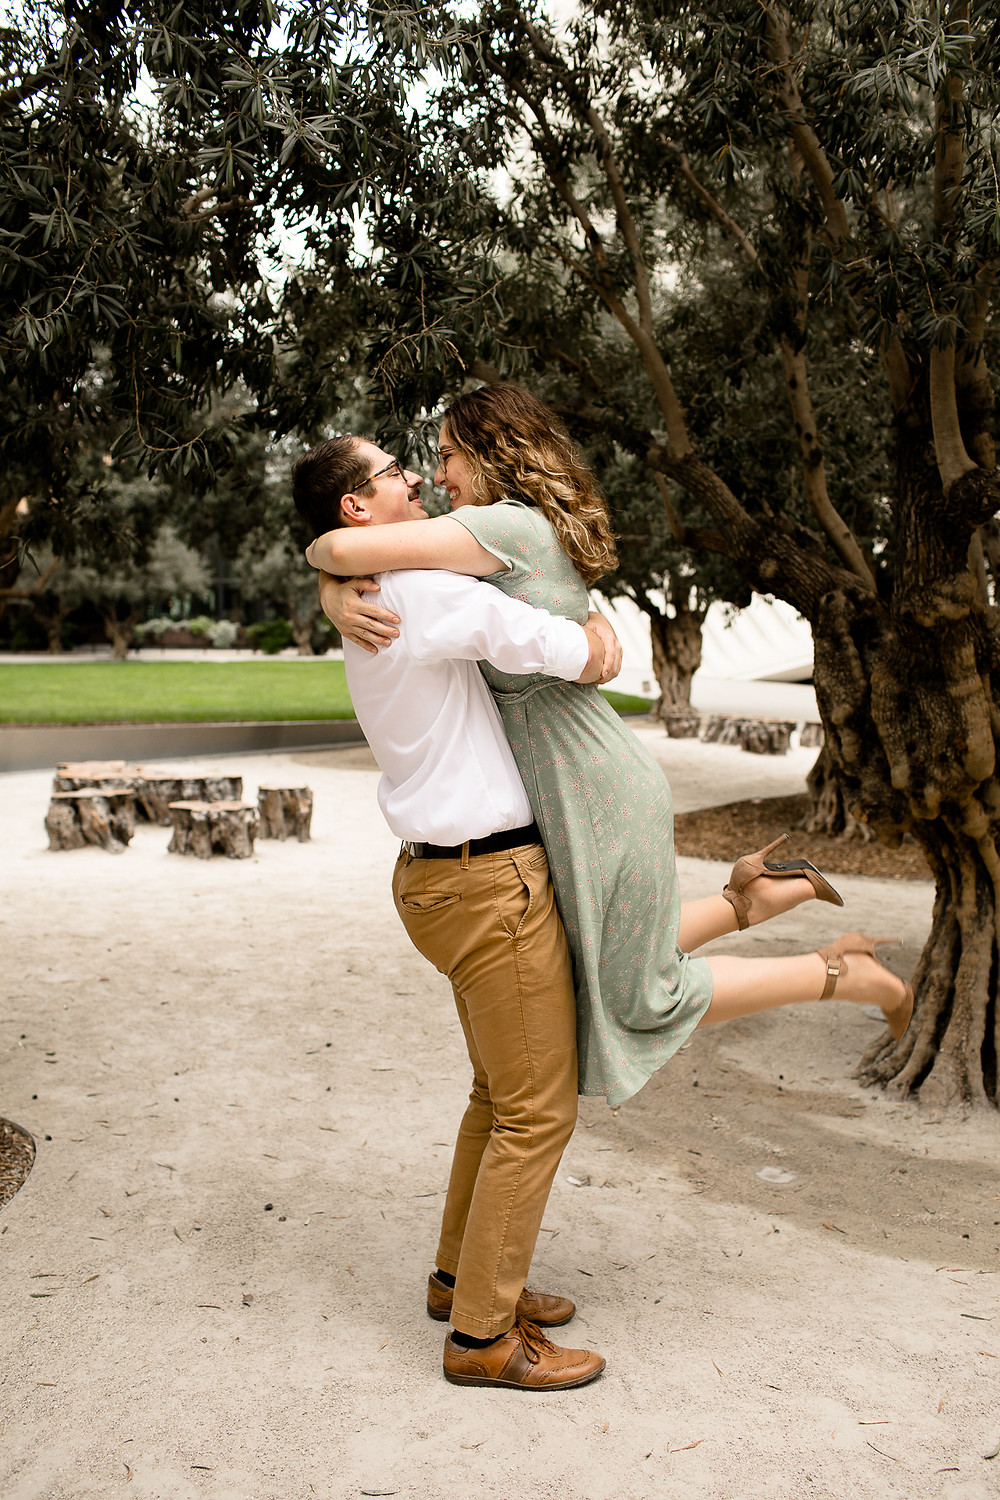 man picking up woman in green dress in front of trees